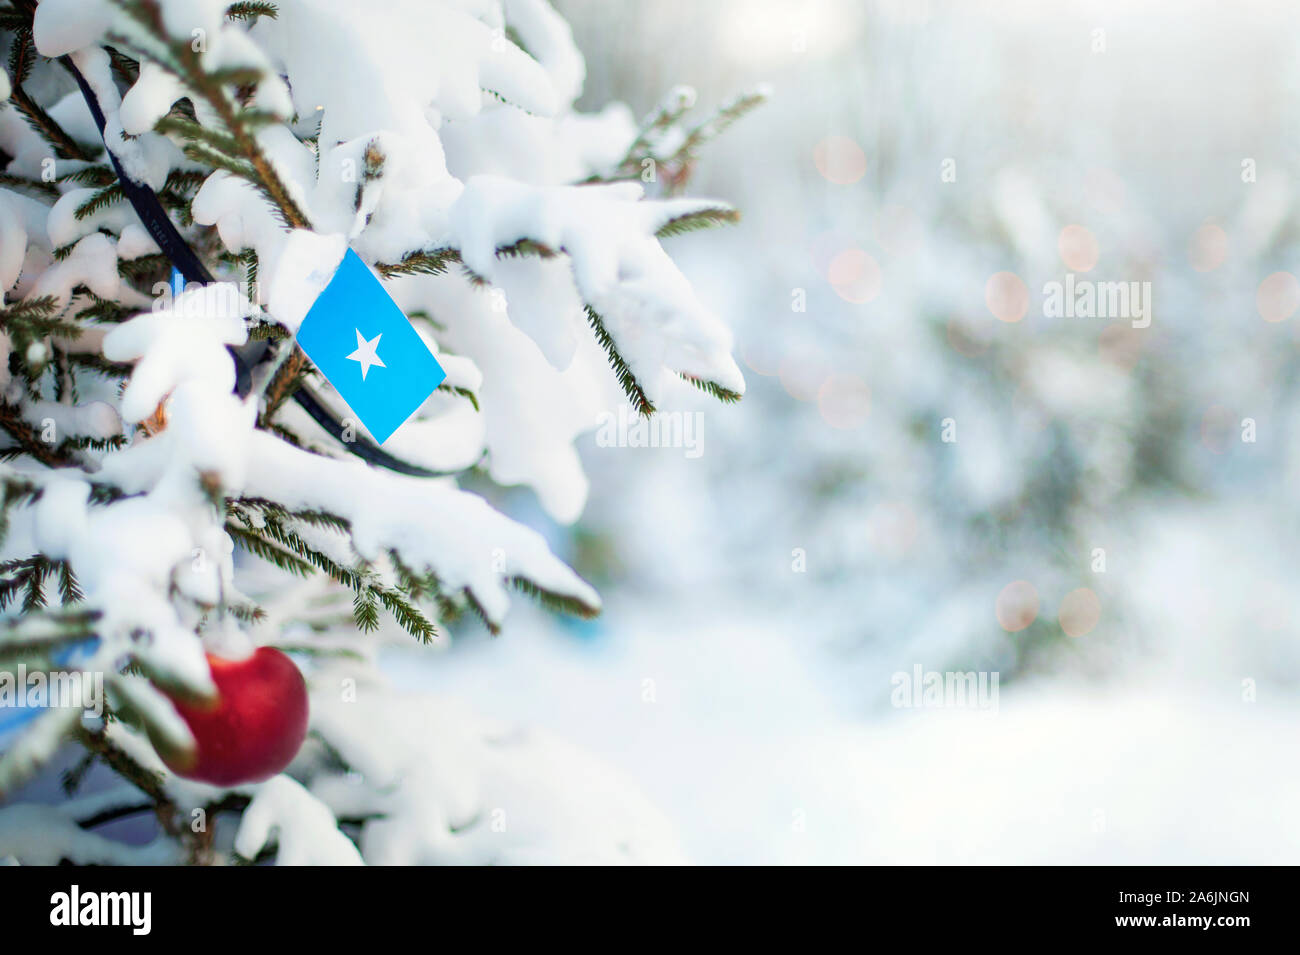 Christmas Somalia. Xmas tree covered with snow, decorations and a flag. Snowy forest background in winter. Christmas greeting card. Stock Photo